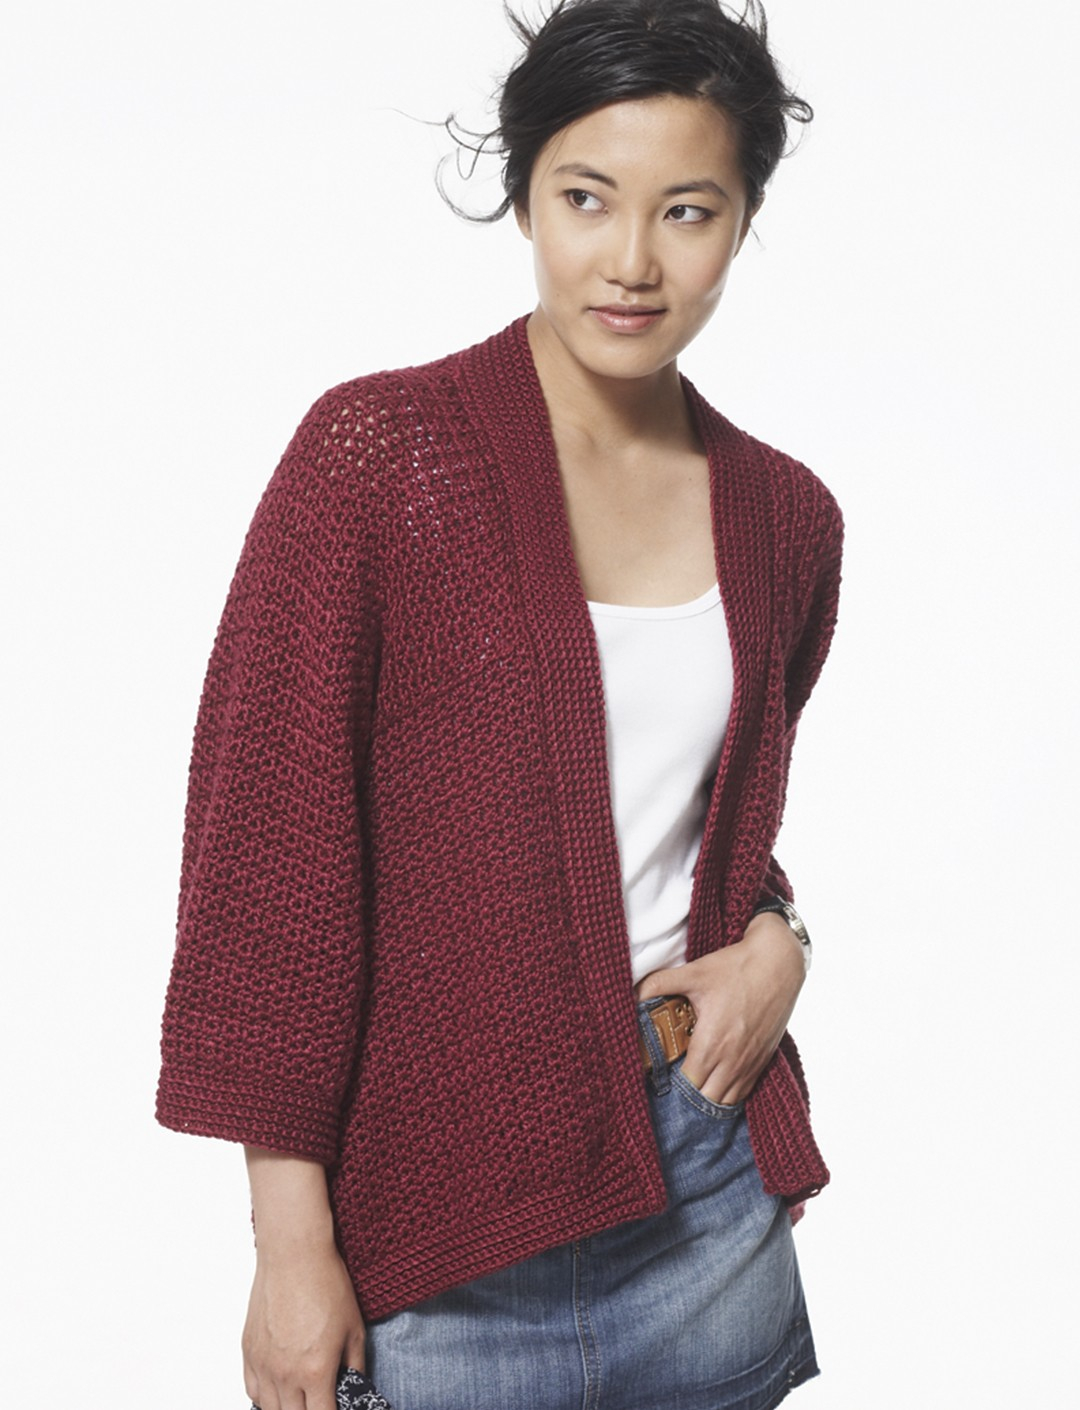 Kimono Sweater Knitting Pattern Crochet Cardigan Soft Drape Kimono Jacket Knqijfi Crochet And